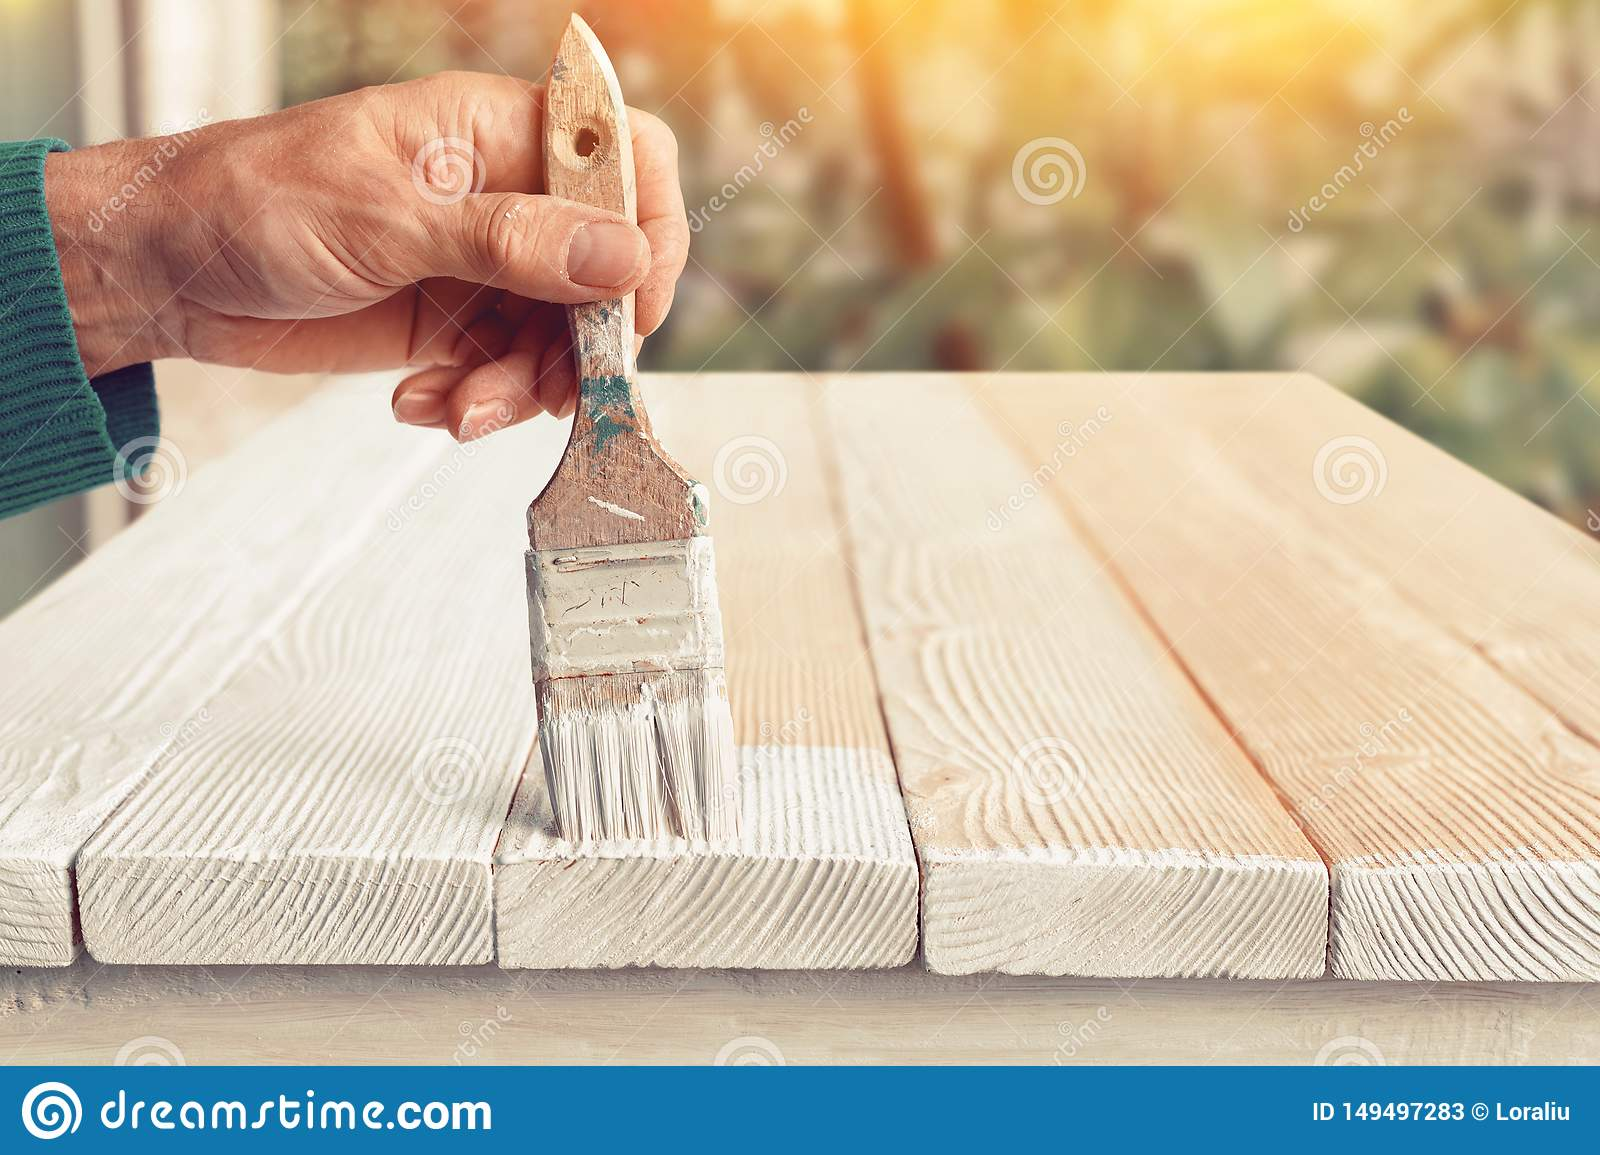 Worker Painting White Wooden Furniture Outdoor Stock Image Image Of Holding Natural 149497283